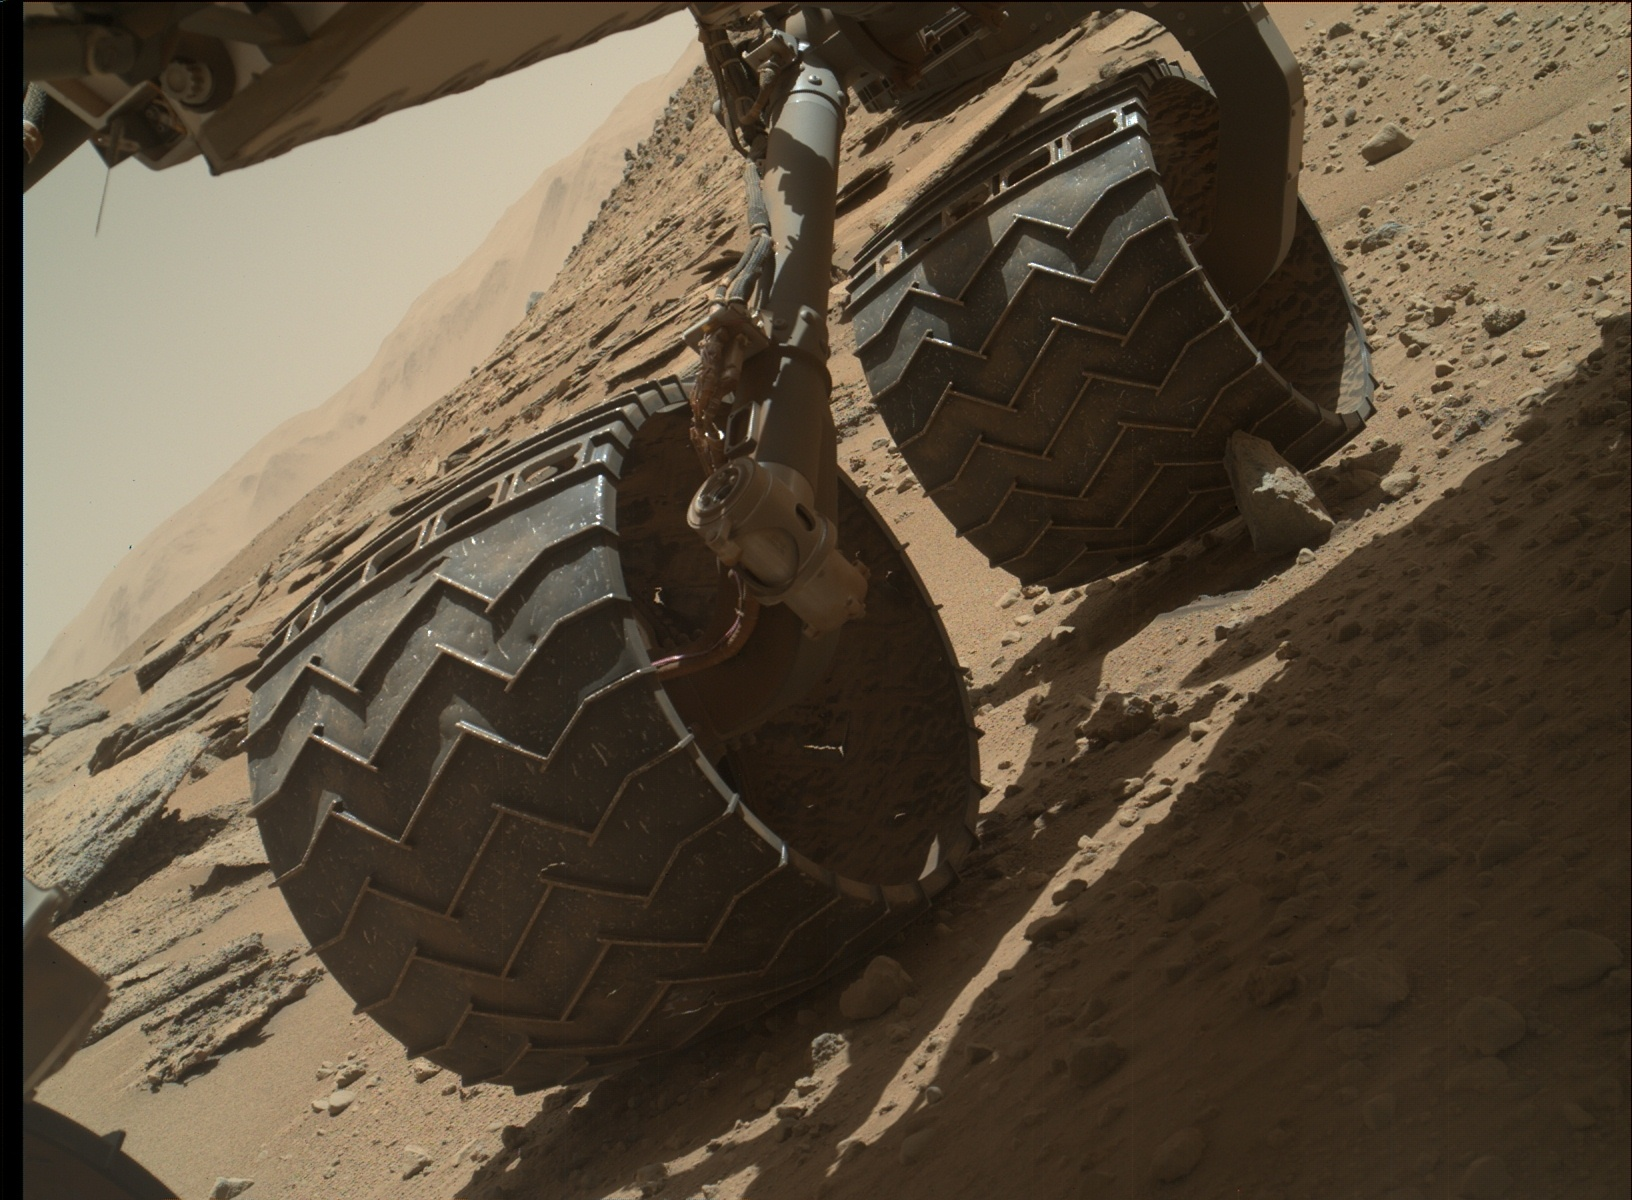 Nasa's Mars rover Curiosity acquired this image using its Mars Hand Lens Imager (MAHLI) on Sol 631, at drive 1472, site number 31